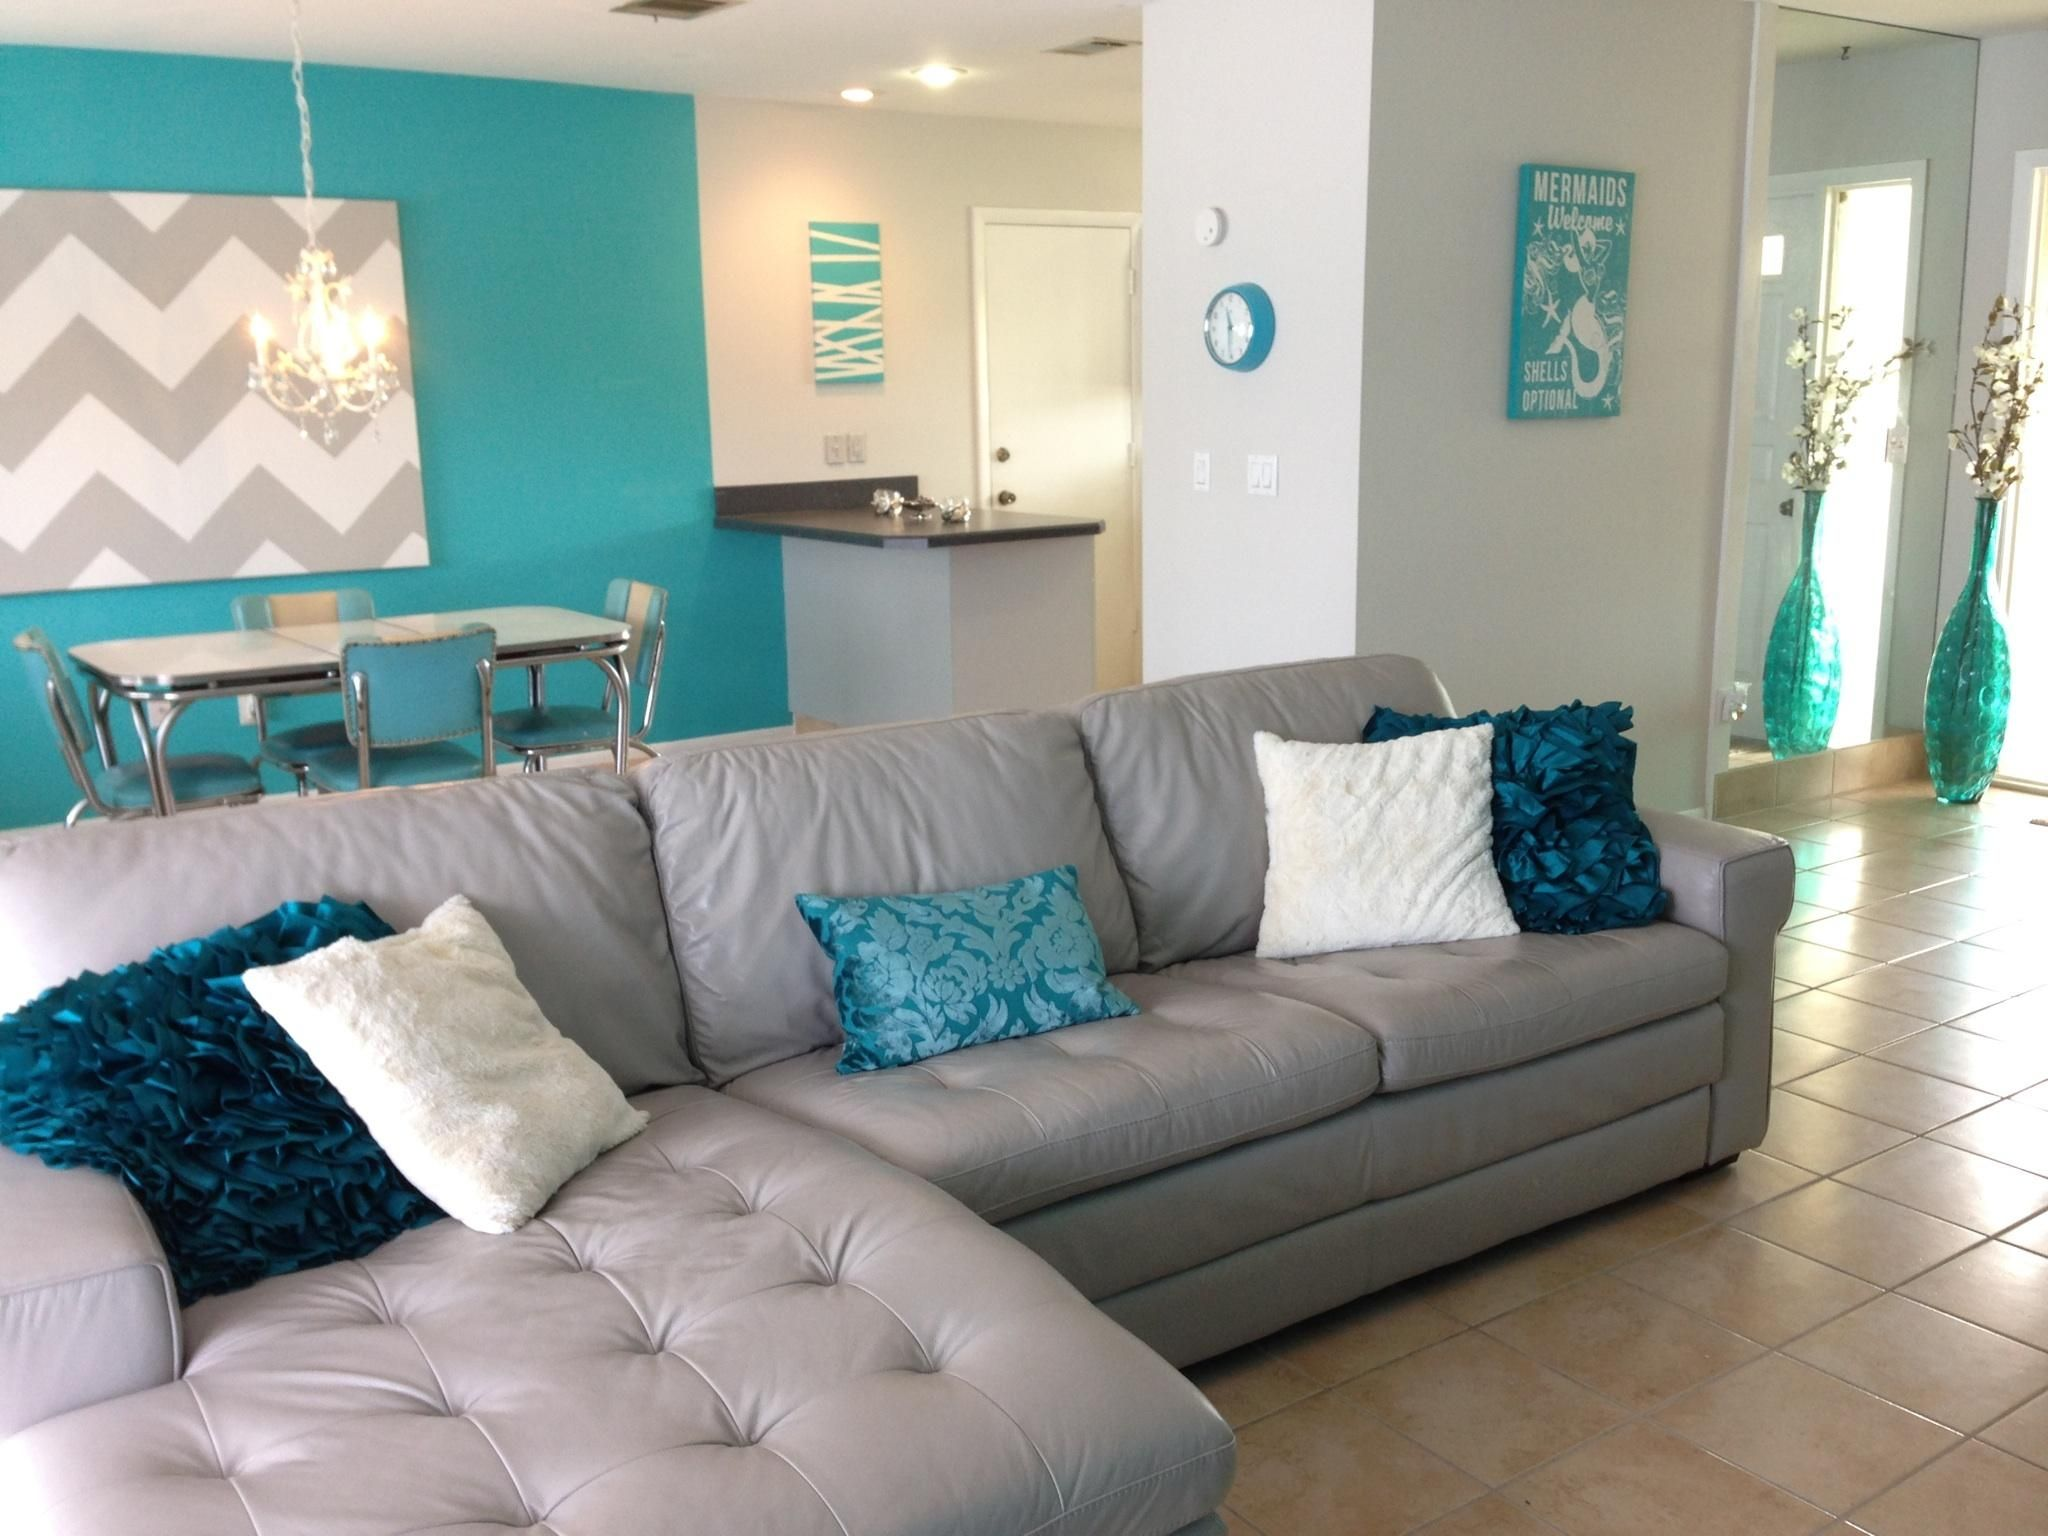 20 Grey And Teal Living Room Magzhouse, Gray And Turquoise Living Room Decor